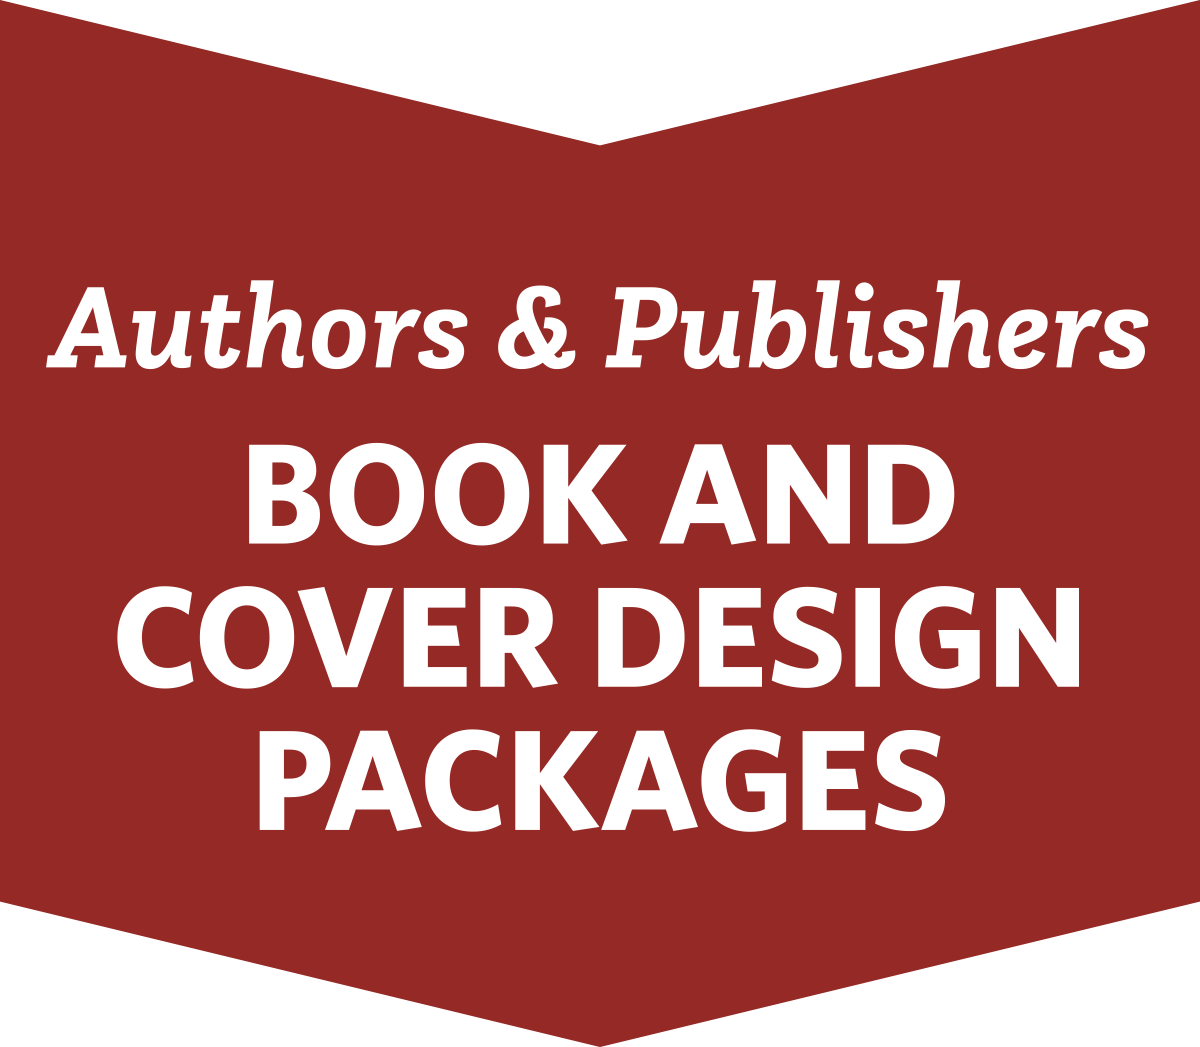 Authors and Publishers Book Cover Design Packages